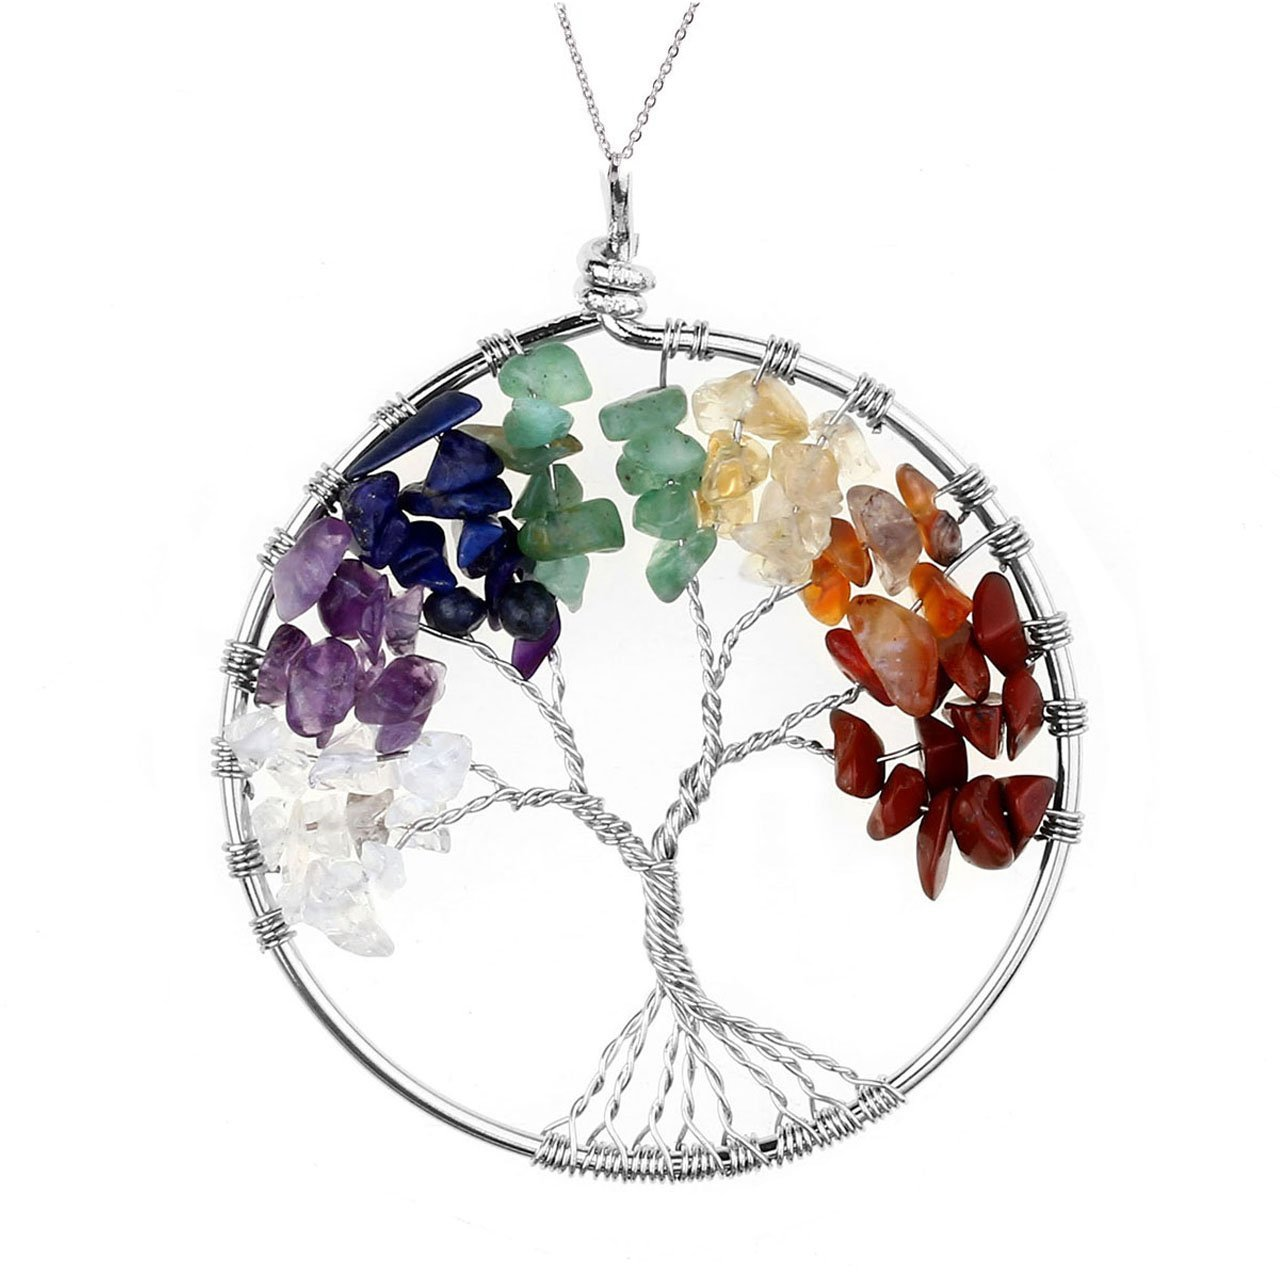 Jovivi 7 Chakra Gemstone Tree Of Life Natural Tumbled Gemstone Wire Wrapped Pendant Necklace,Mothers Day Gifts